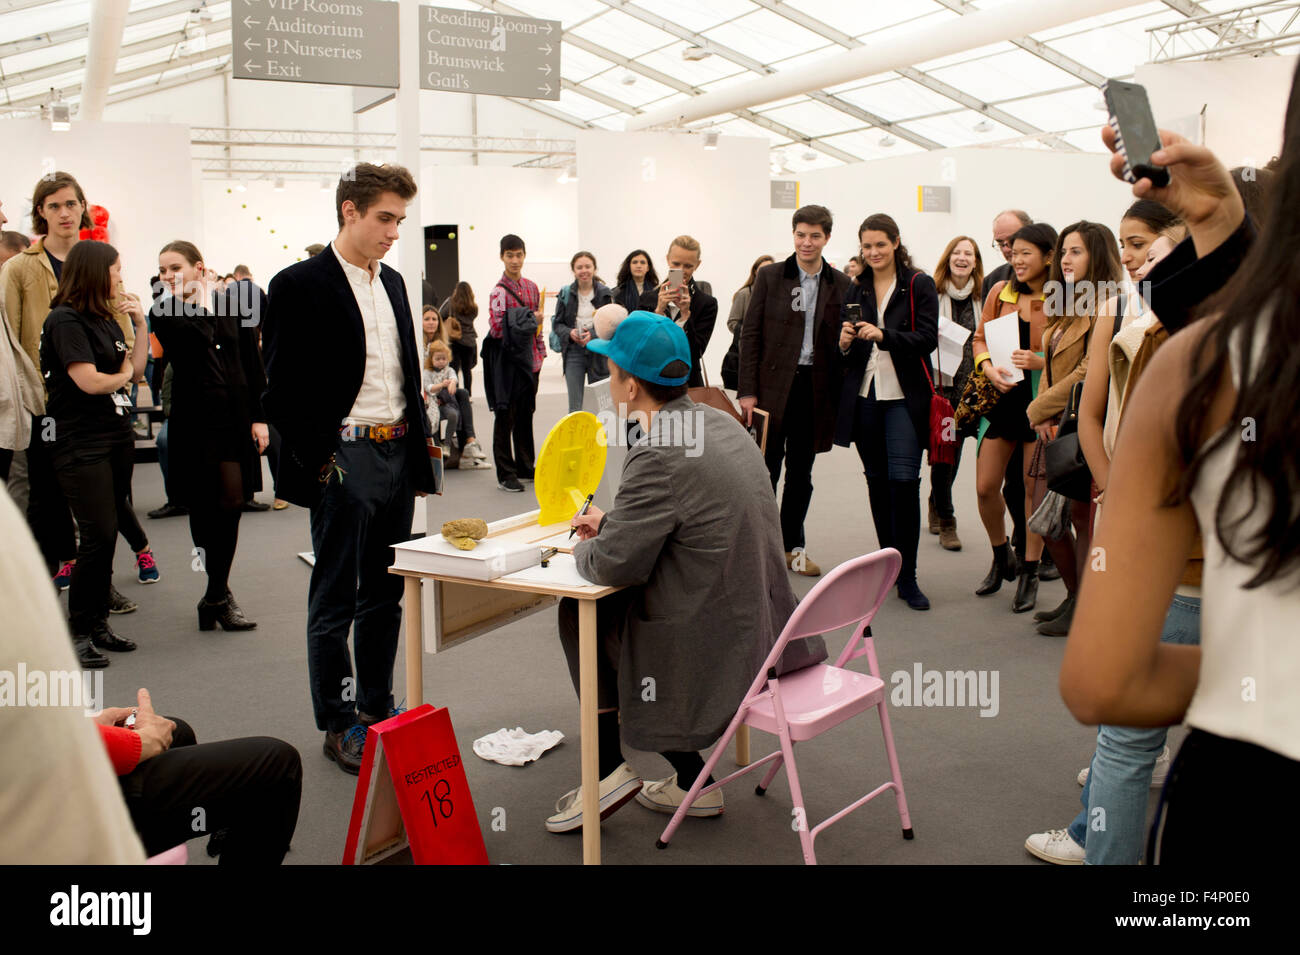 Frieze Art Fair London. 2015. Stand of Ken Kagame who in 30 seconds draws visitors genitals for free. - Stock Image